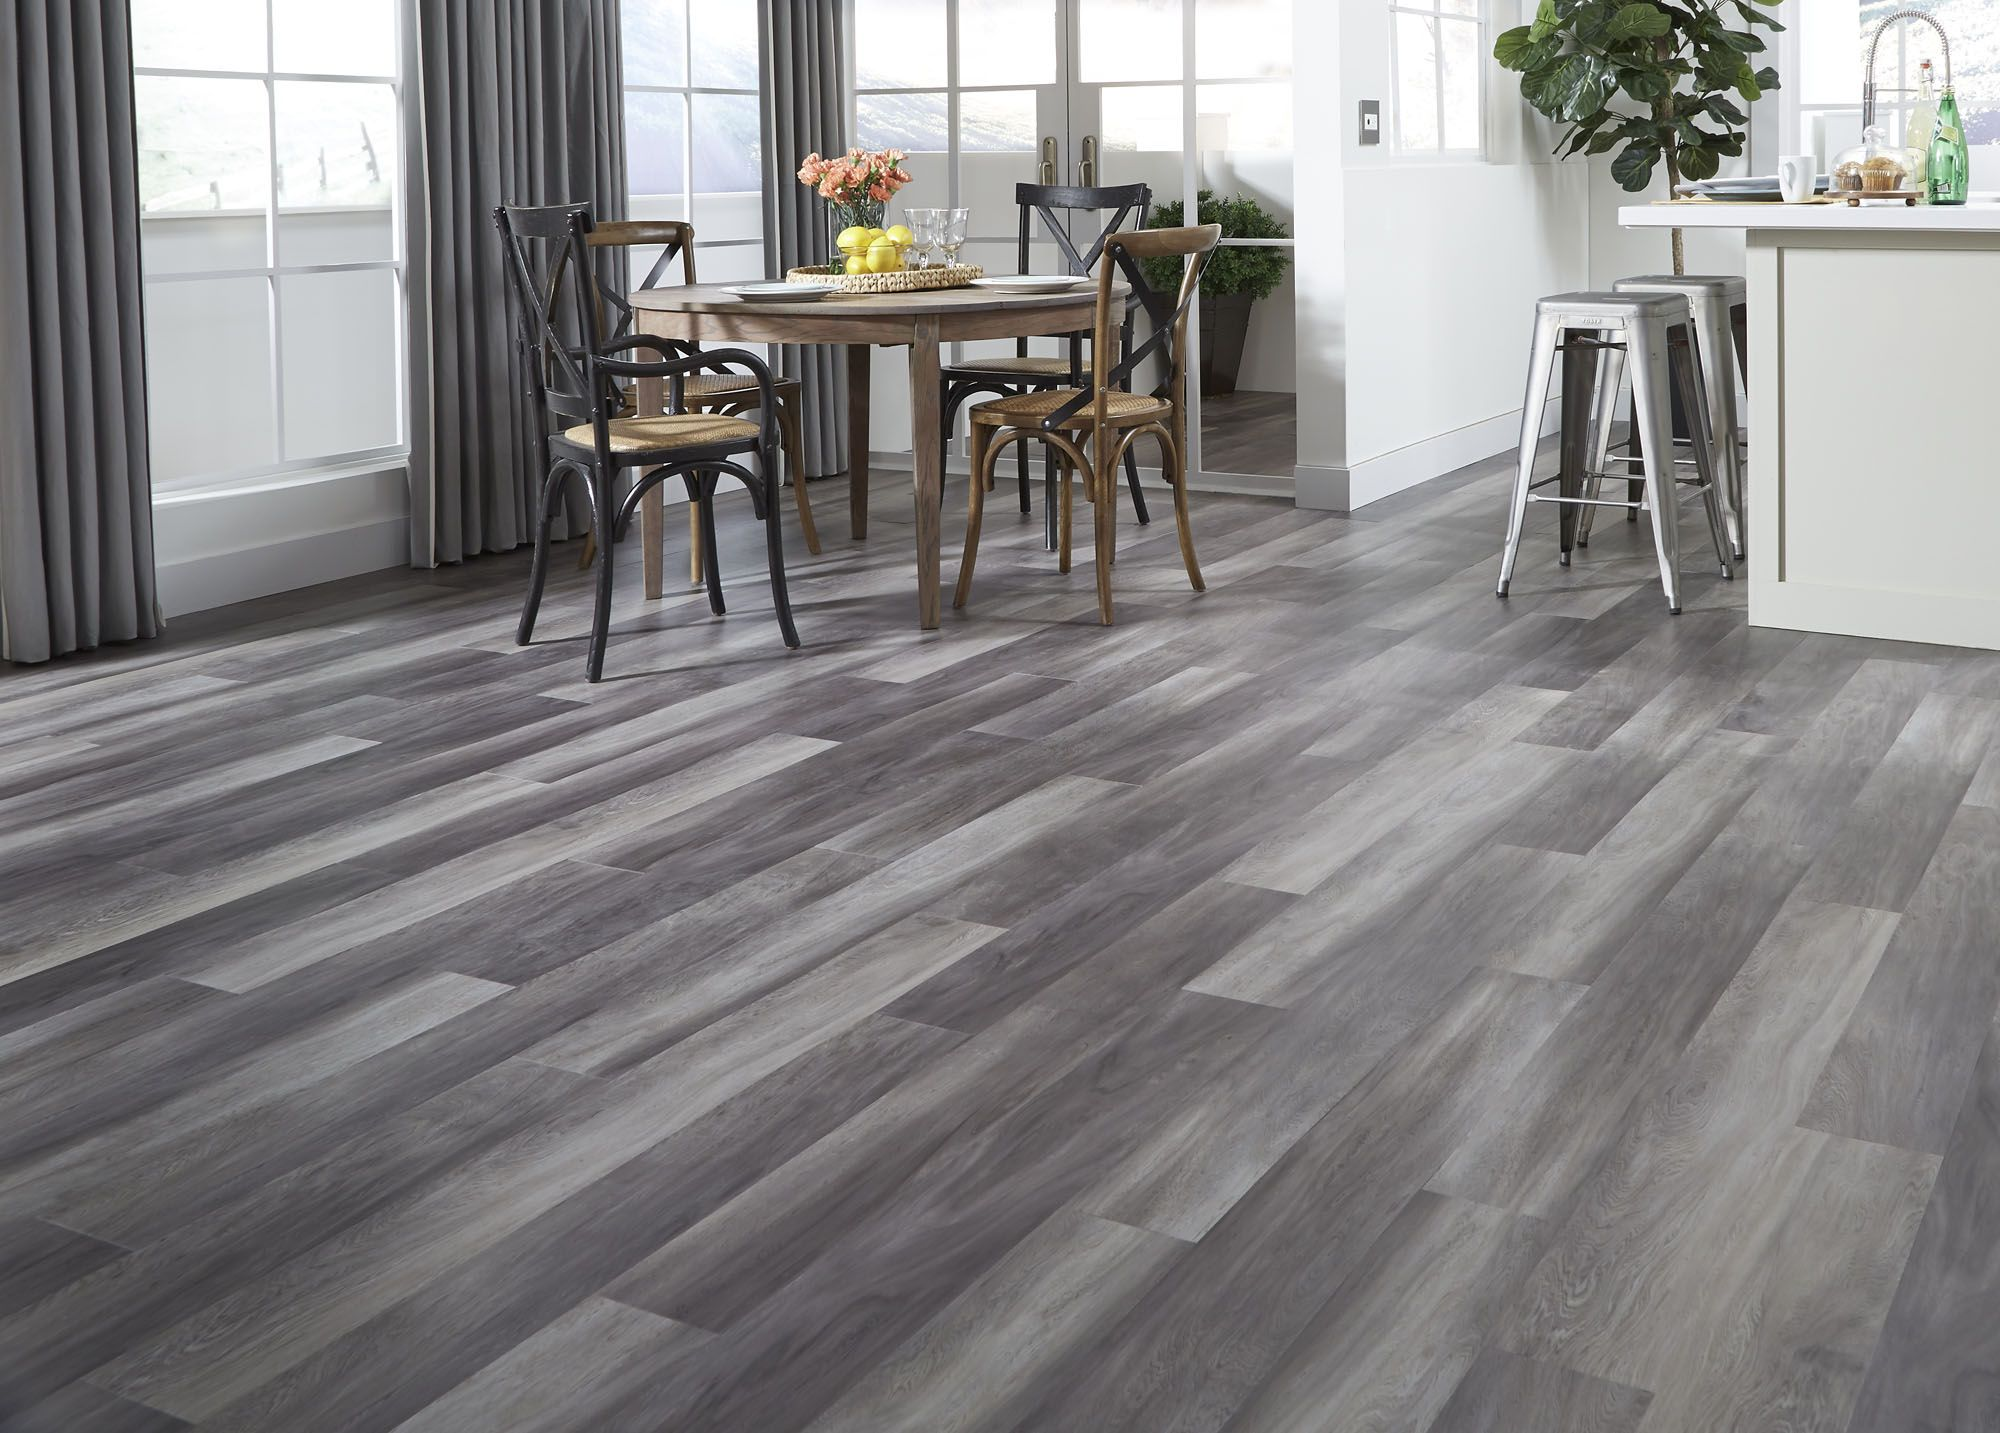 Stormy Gray Oak A Waterproof Luxury Vinyl Plank Silver Gold Collection Grey Laminate Flooring Vinyl Plank Flooring Grey Vinyl Plank Flooring